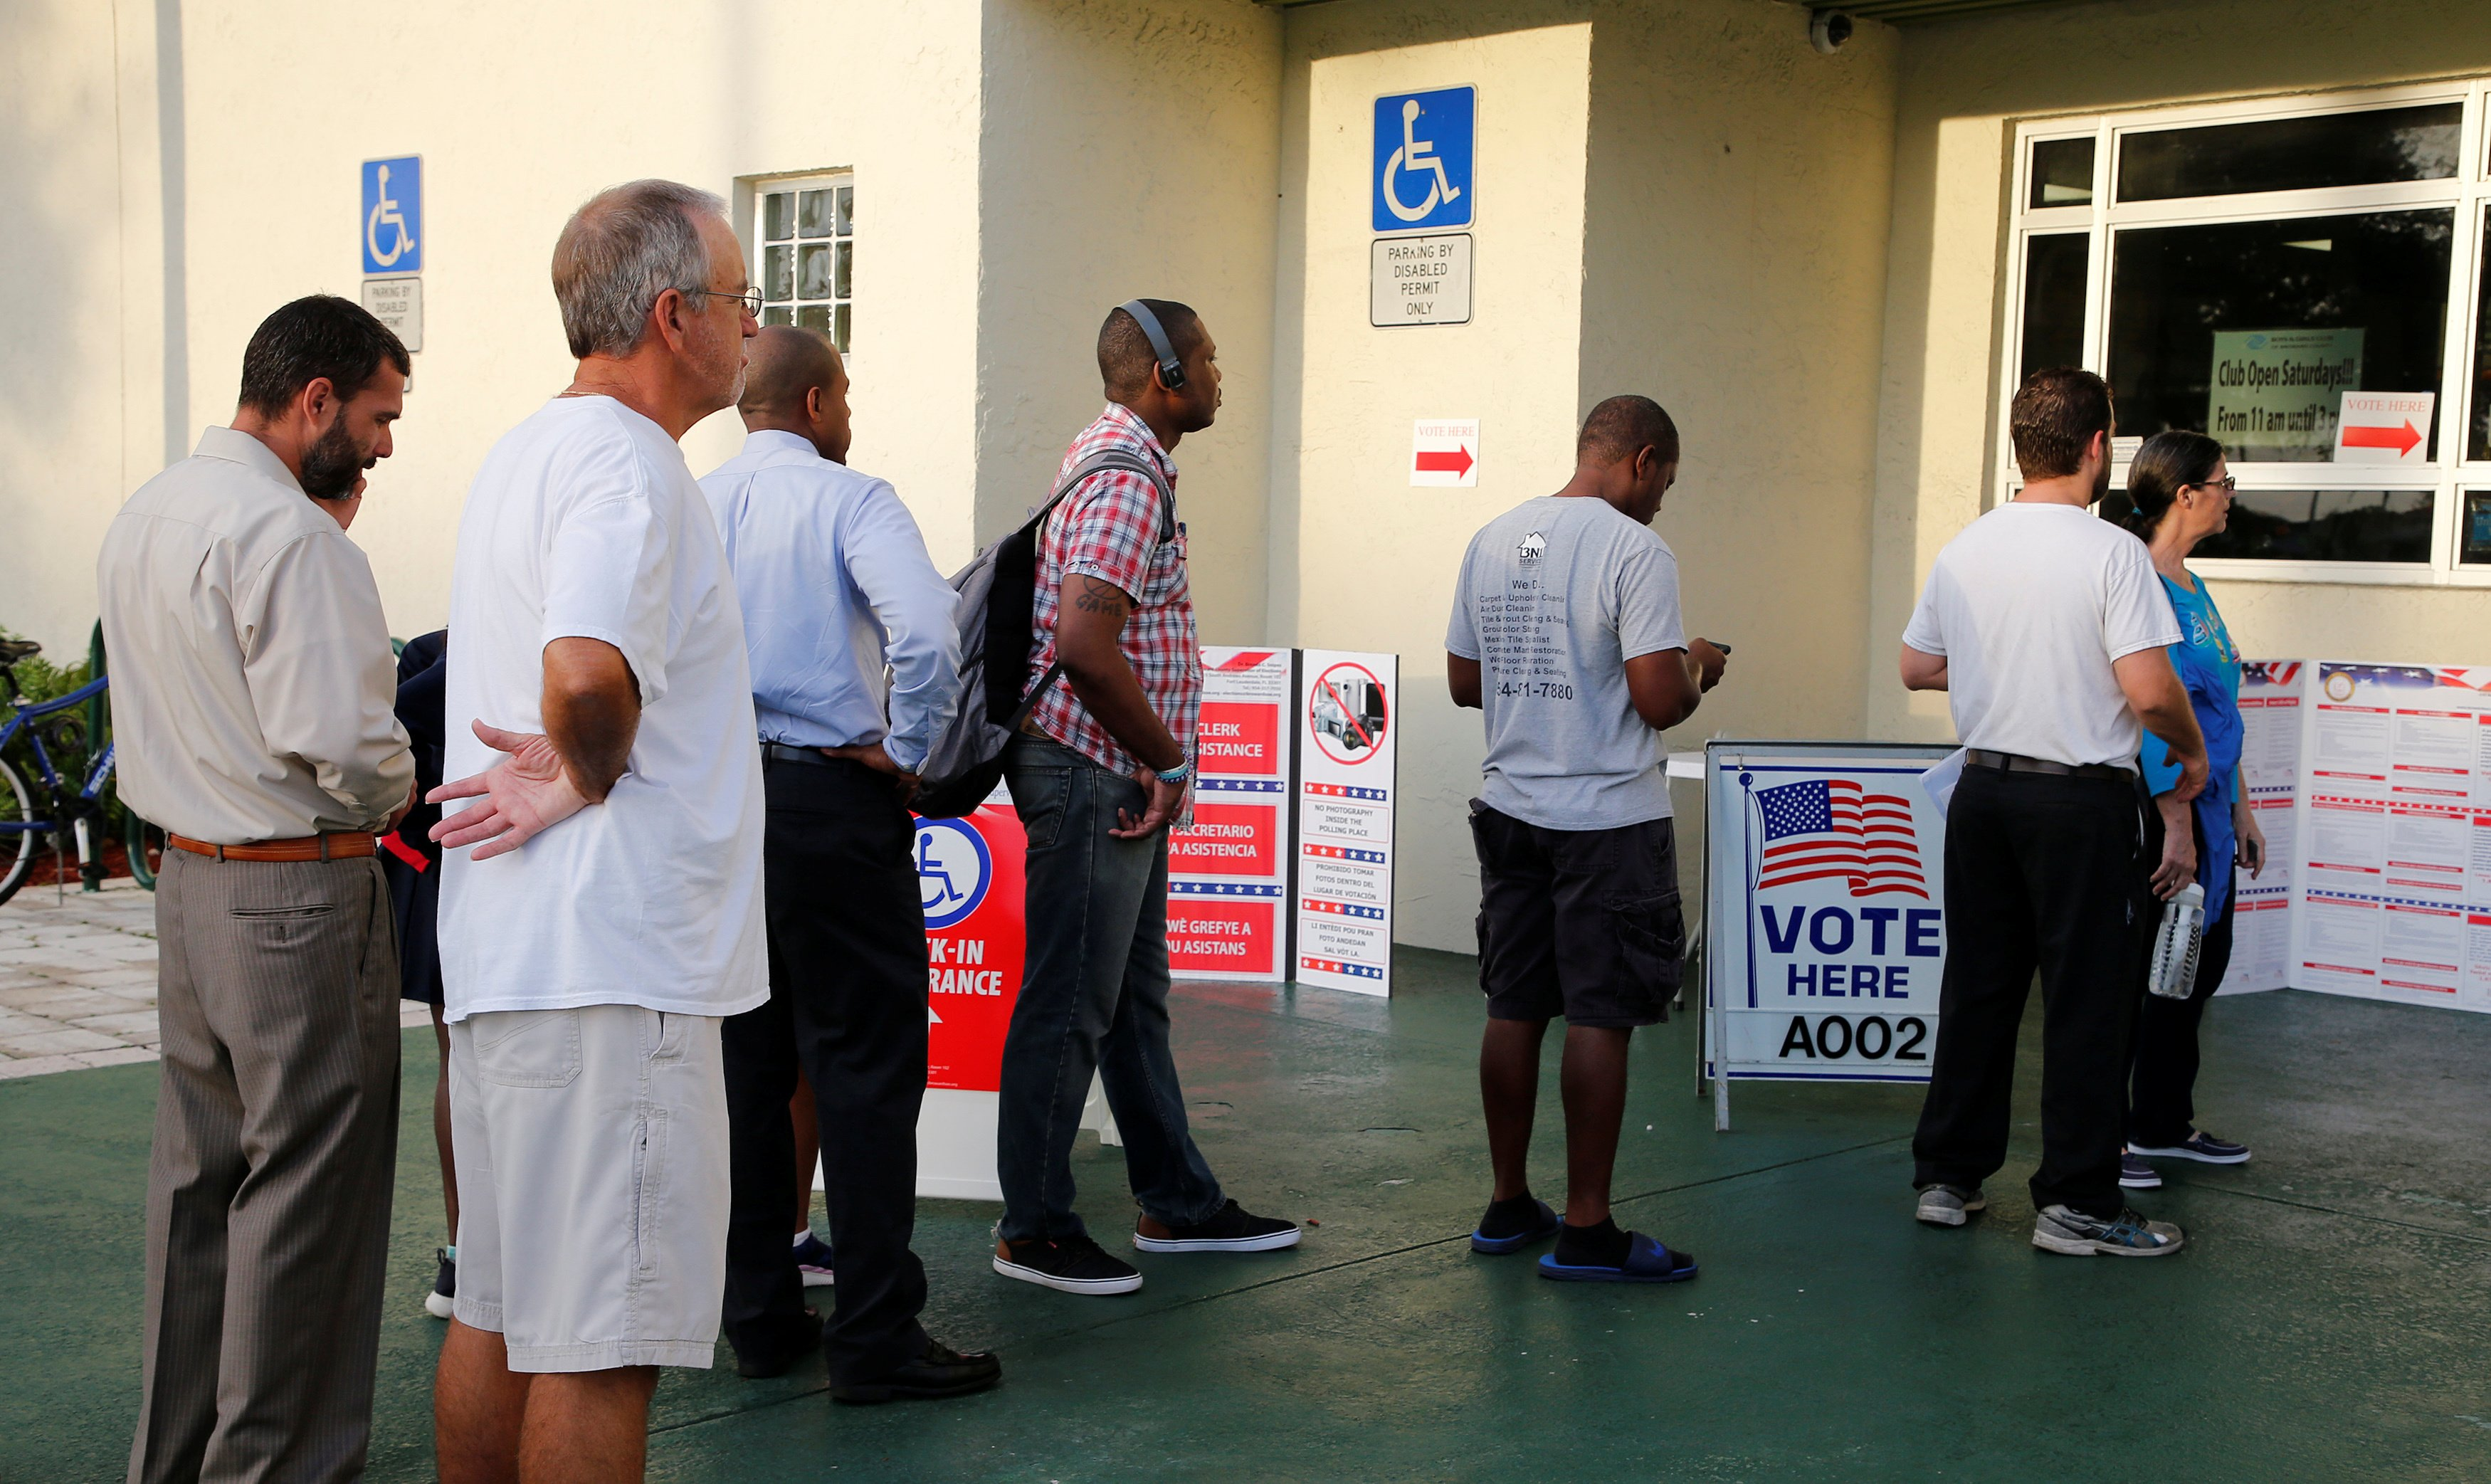 Voters line up to vote in the U.S. midterm congressional and gubernatorial elections in Deerfield Beach